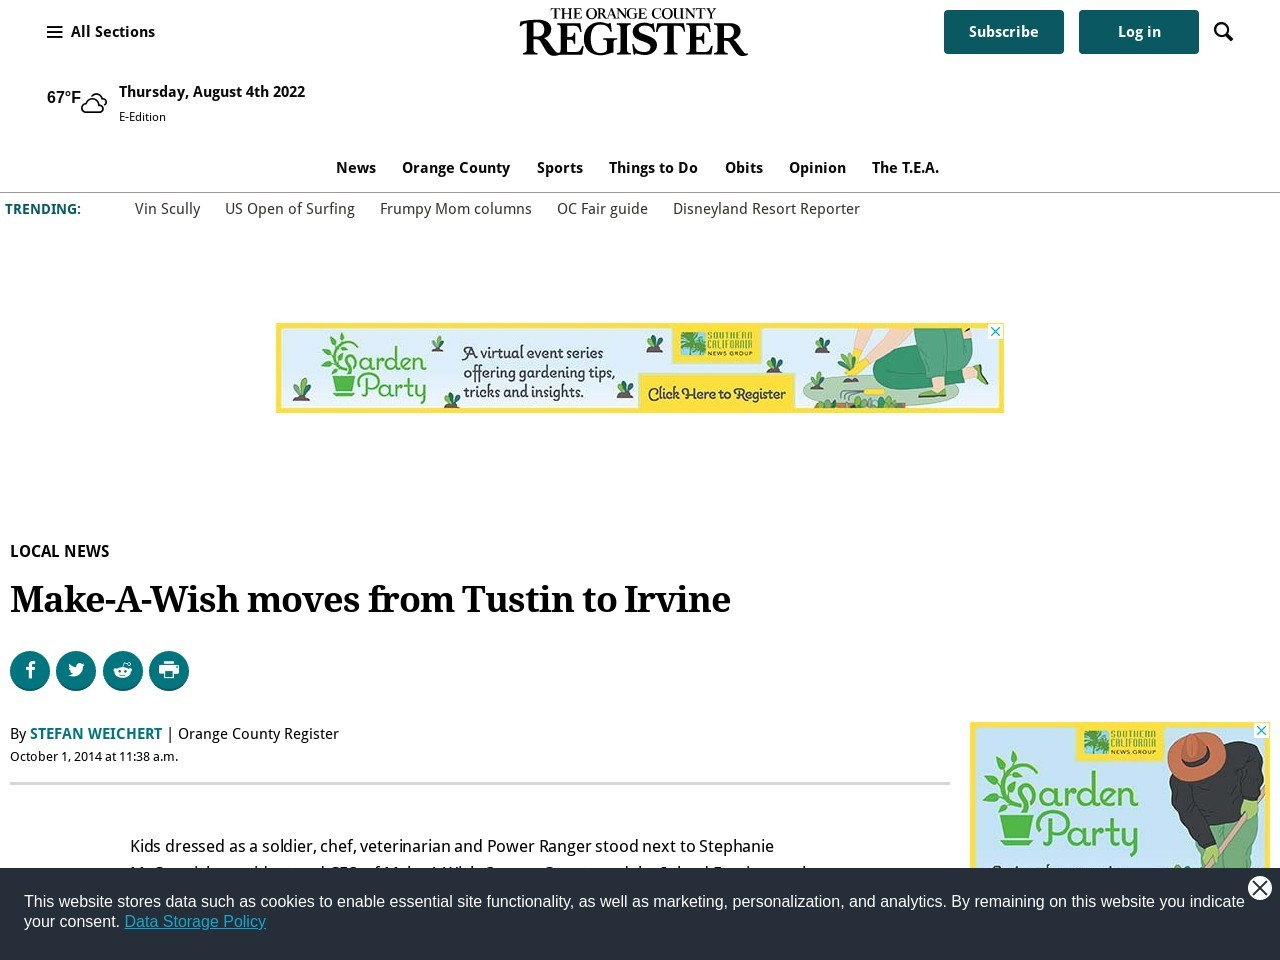 Make-A-Wish moves from Tustin to Irvine